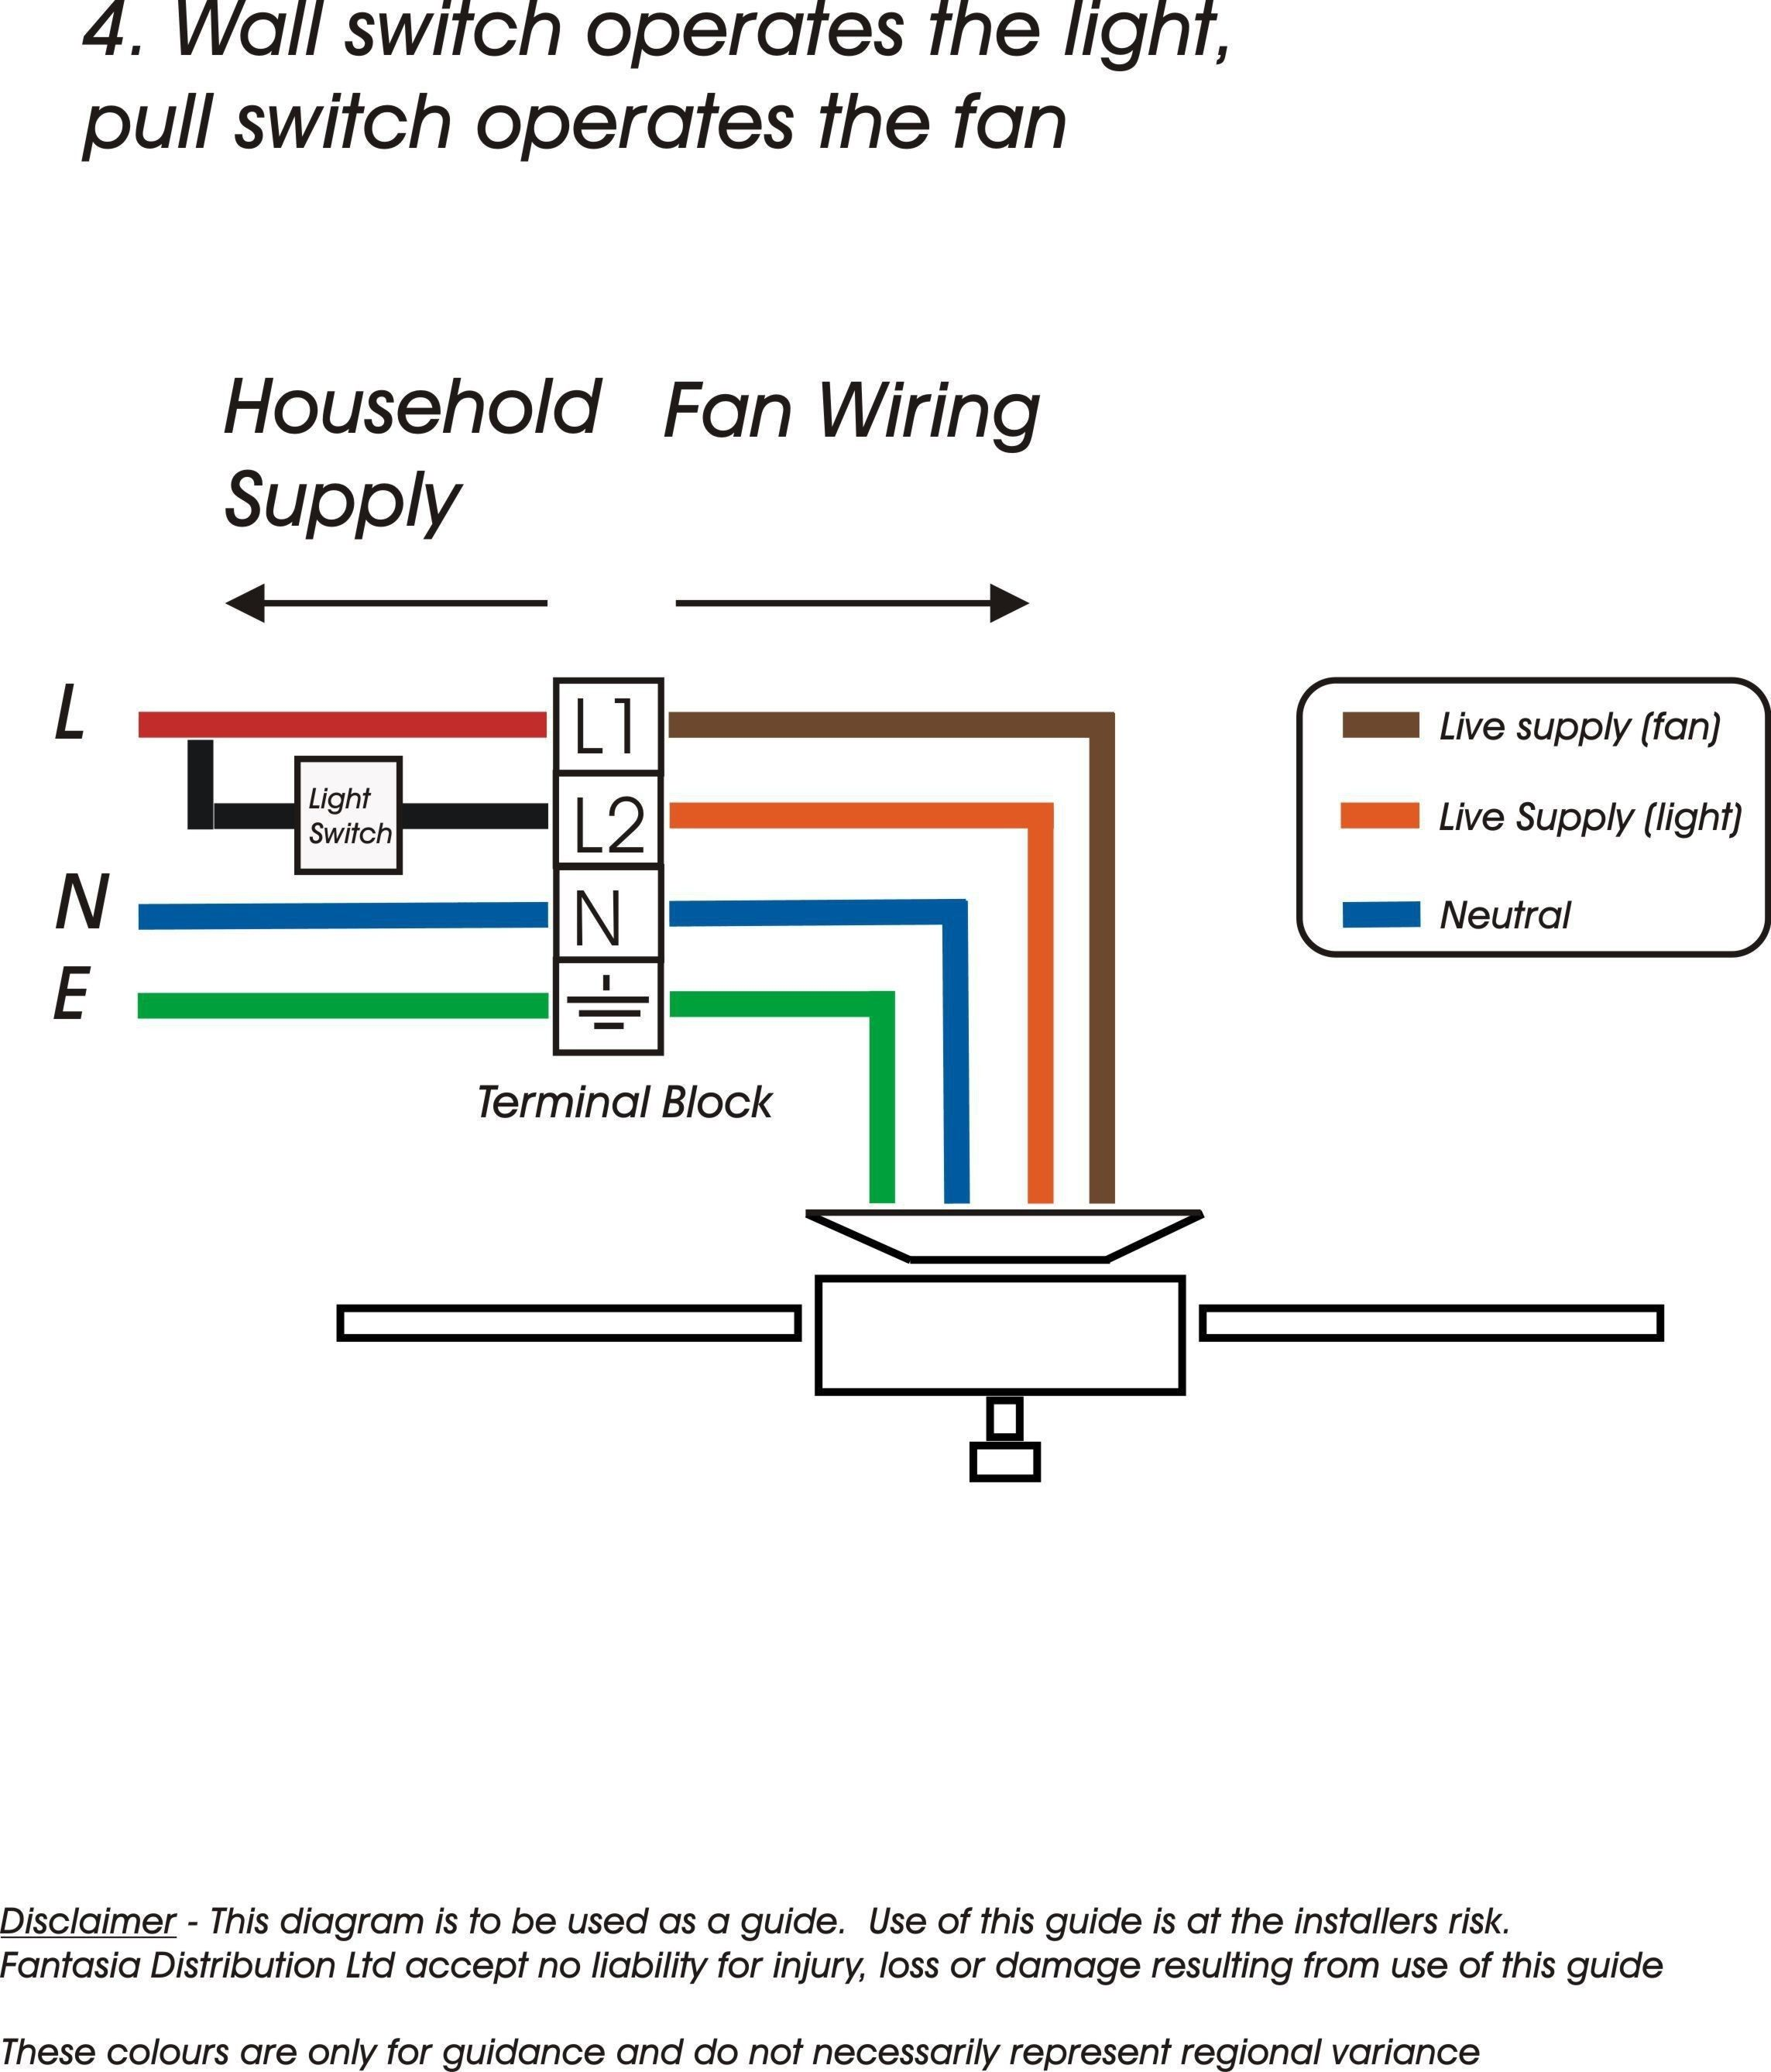 Unique House Light Switch Wiring Diagram Diagram Wiringdiagram Diagramming Diagramm Vi Ceiling Fan Switch Ceiling Fan Wiring Light Switch Wiring